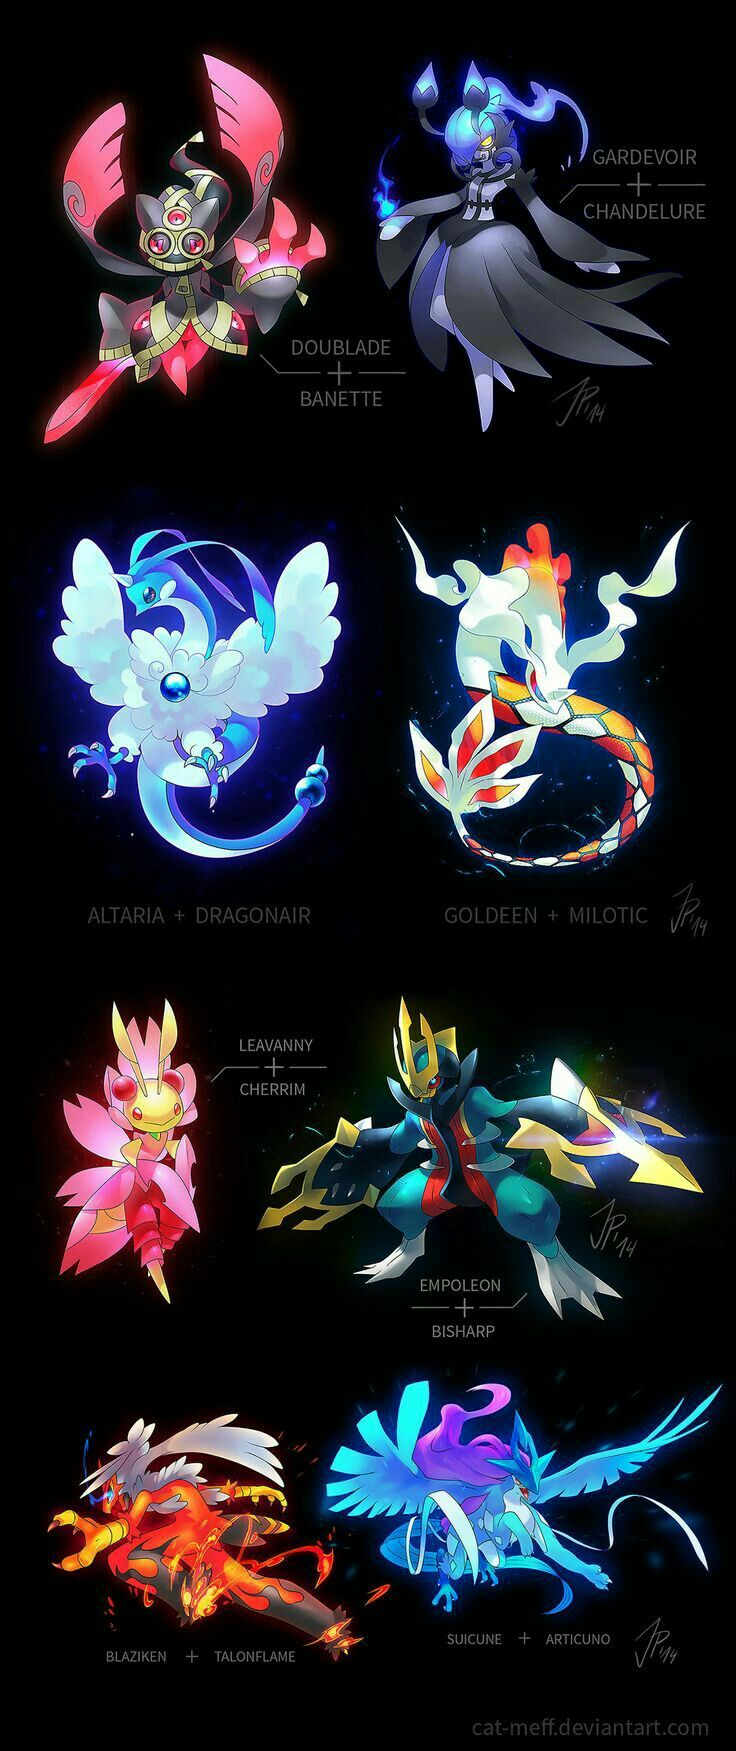 Gardevoir joy studio design gallery best design - Pok Mon Fusions Cool Text Pok Mon